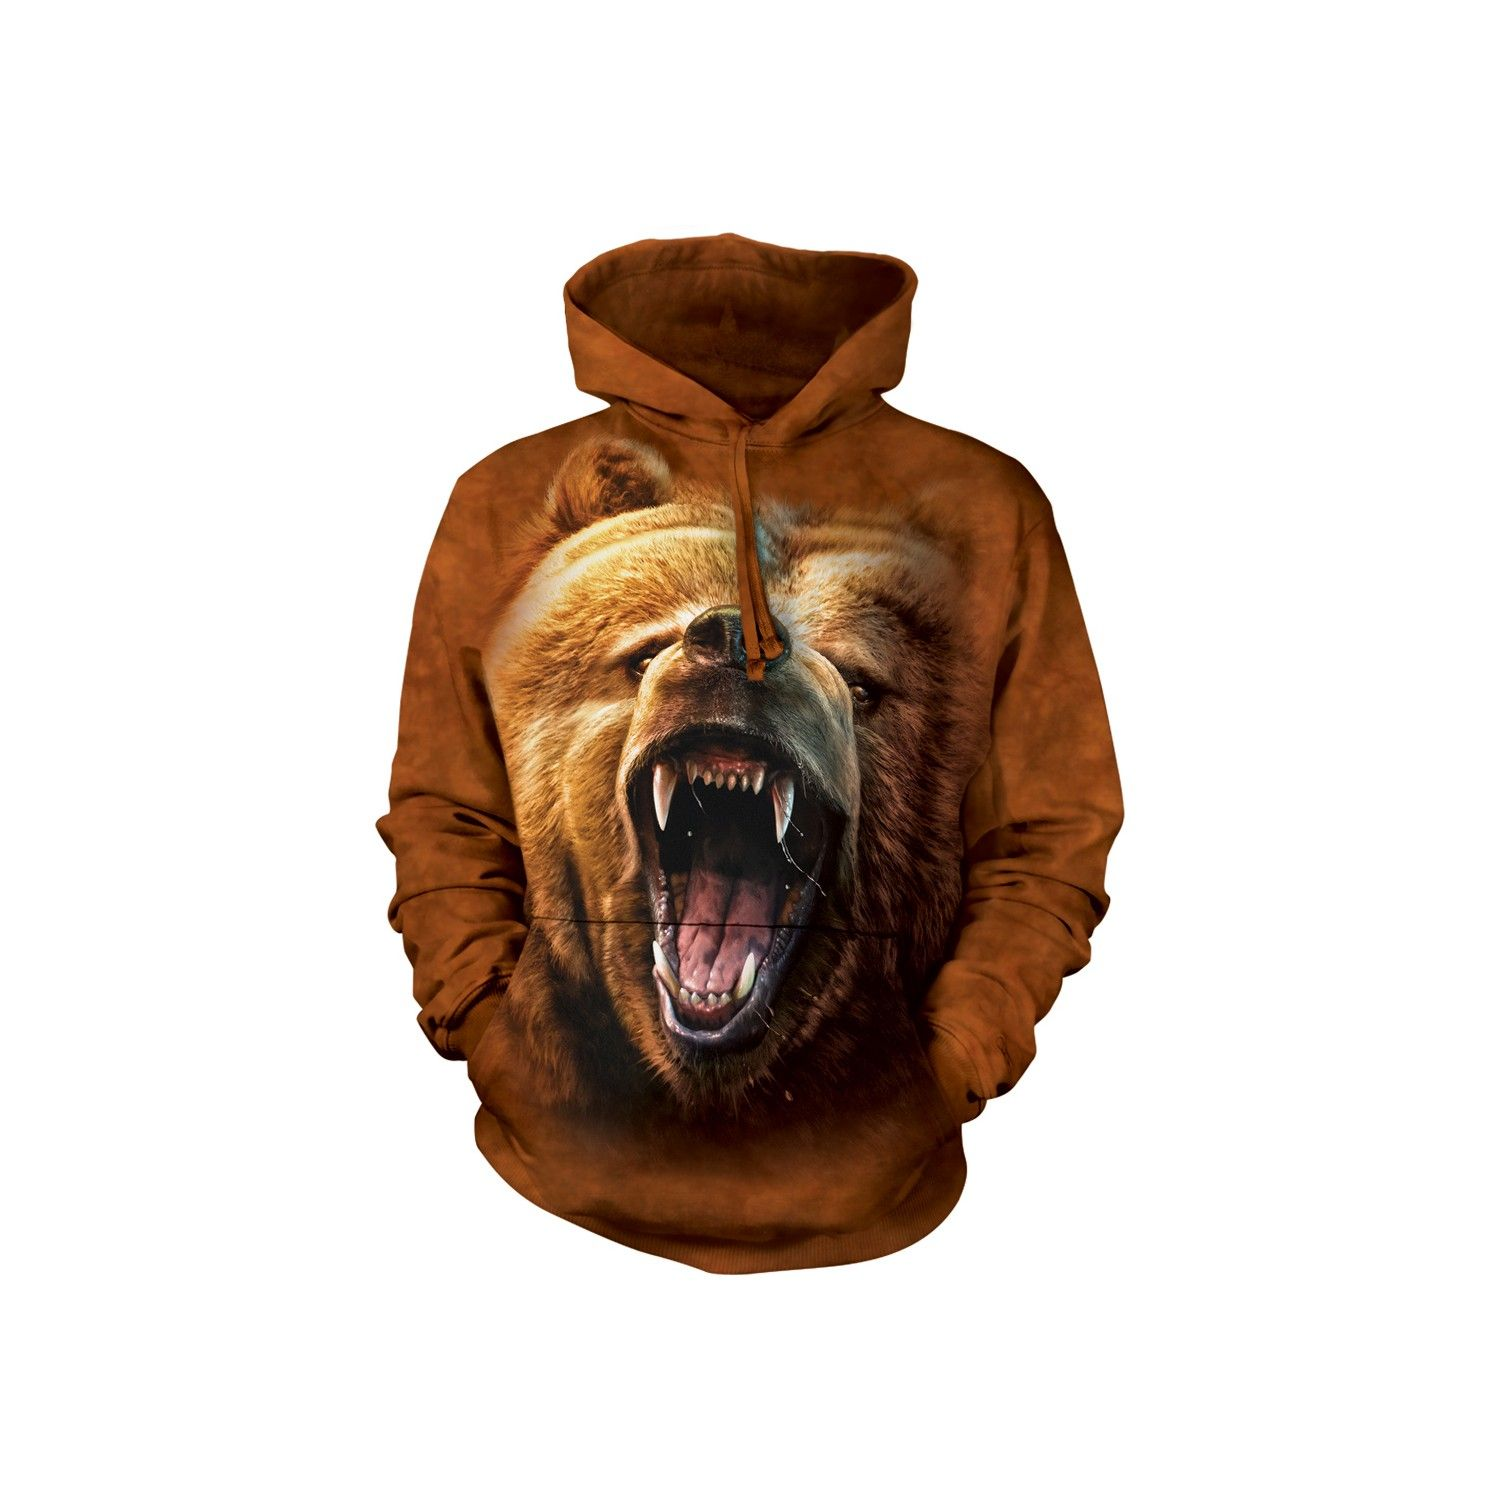 "BEAR /""GRIZZLY GROWL/"" ADULT HOODIE SWEATSHIRT THE MOUNTAIN"